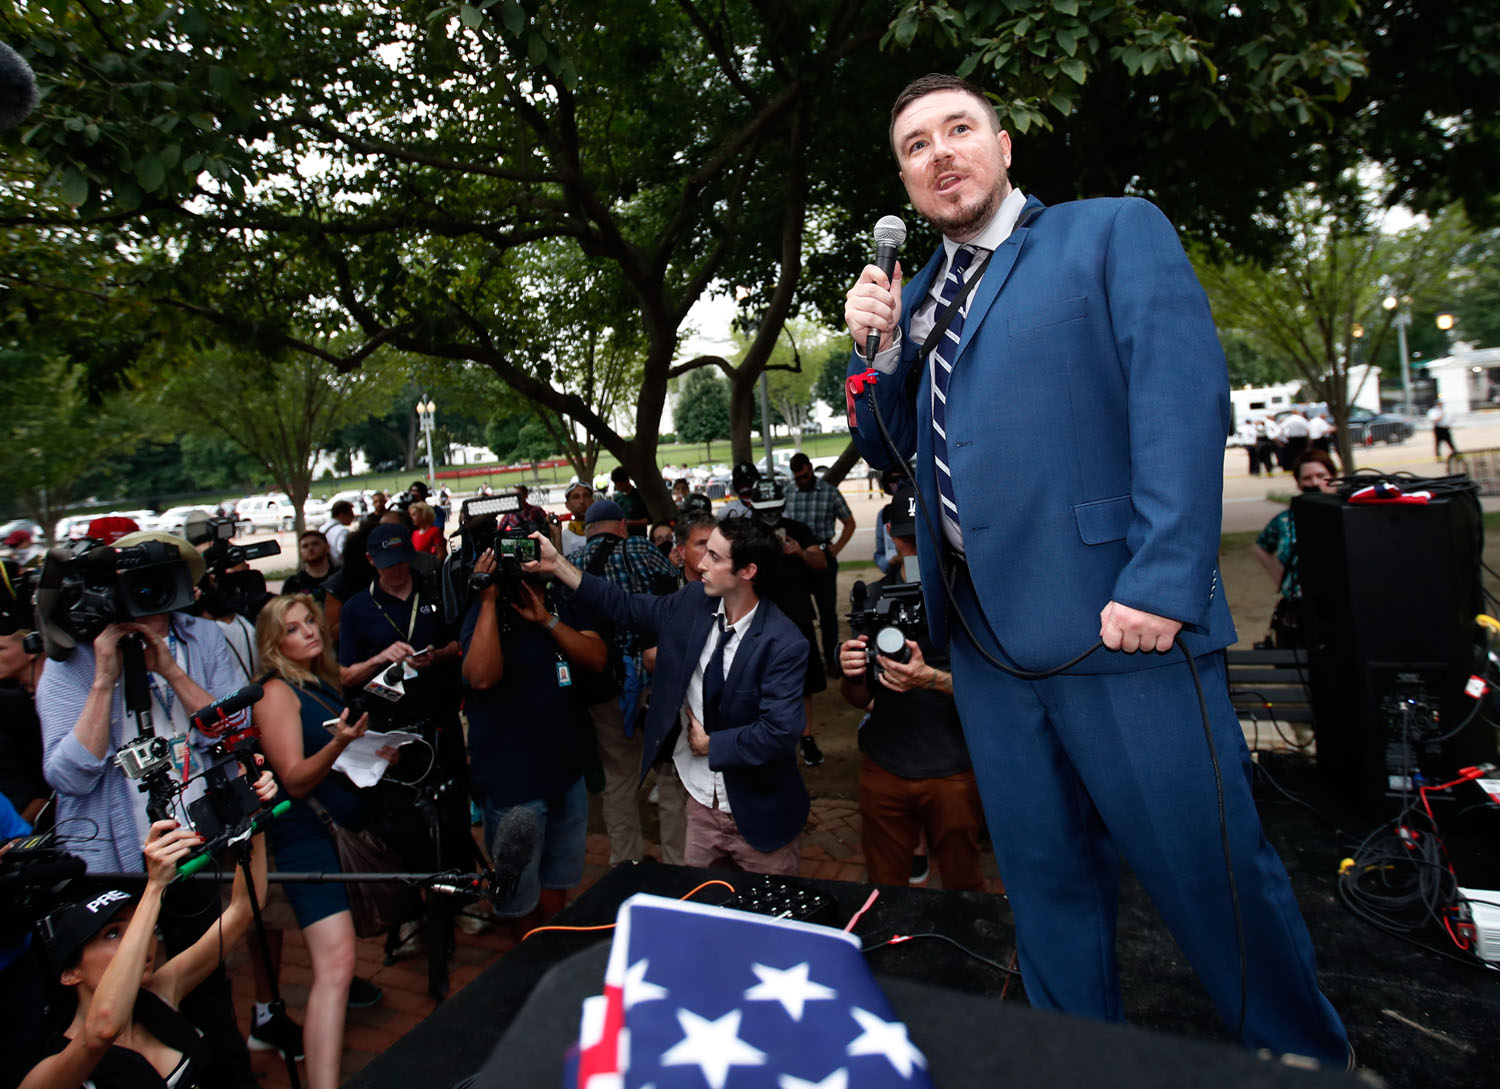 """White nationalist Jason Kessler talks during a rally near the White House on the one year anniversary of the Charlottesville """"Unite the Right"""" rally, Sunday, Aug. 12, 2018, in Washington. (AP Photo/Alex Brandon)"""